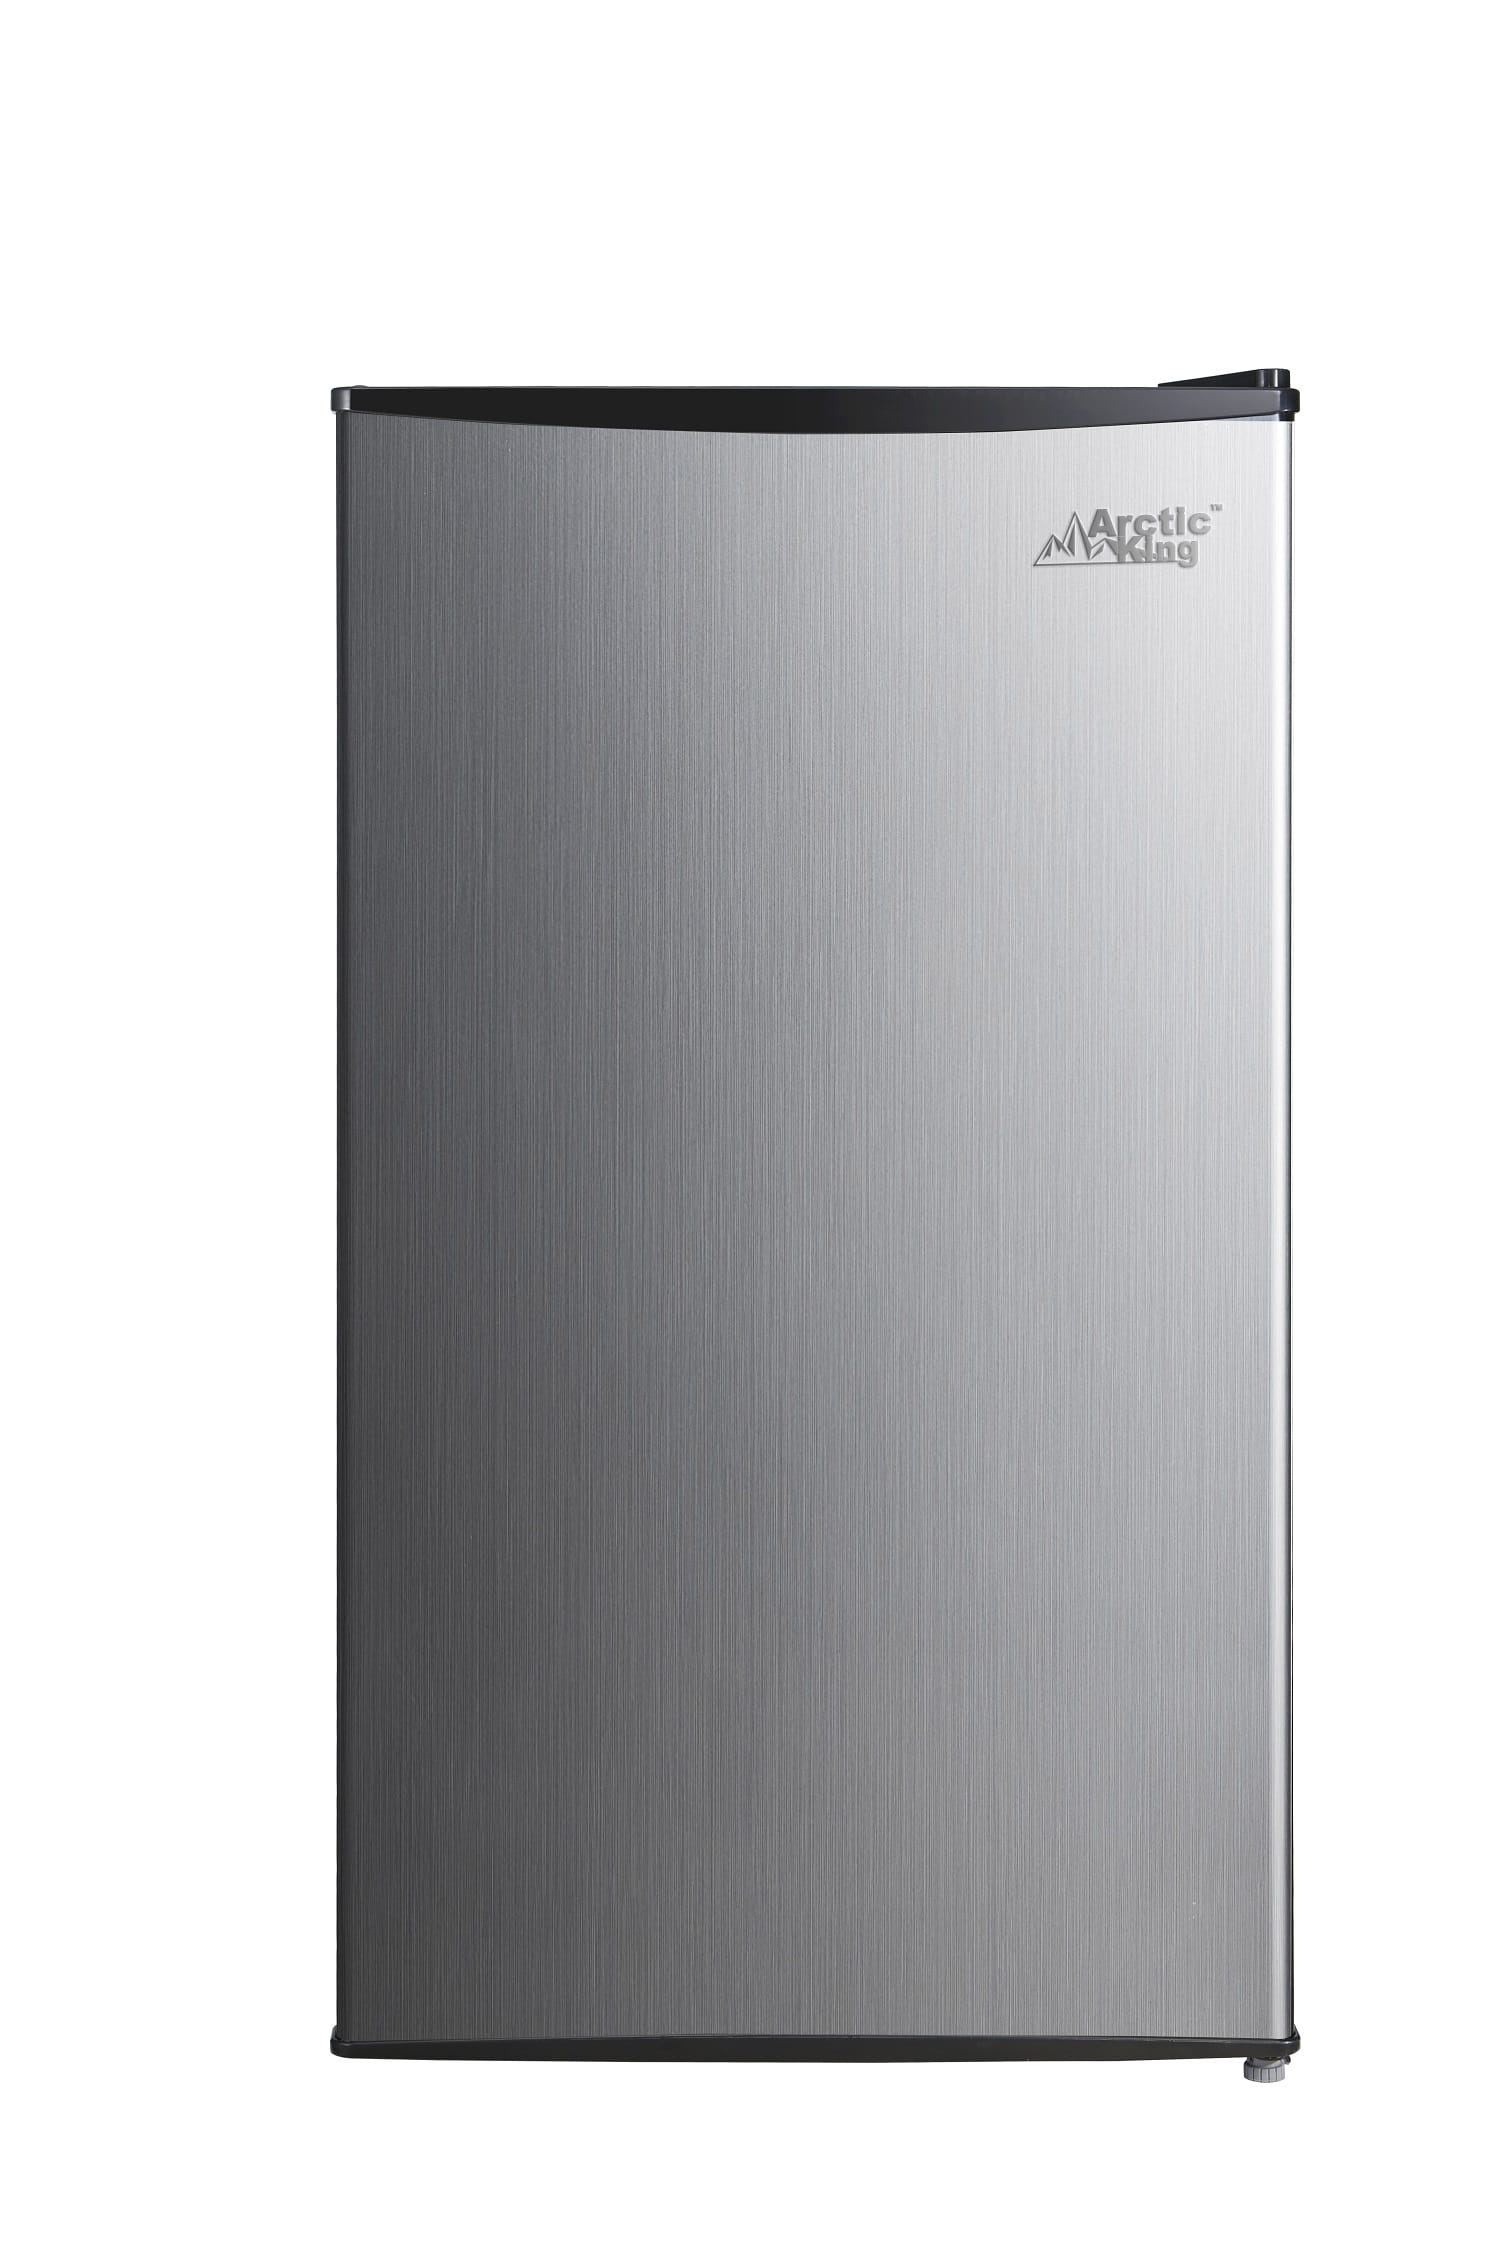 3.3 Cu Ft Arctic King Single Door Mini Fridge (Stainless Steel) $98 + Free Shipping